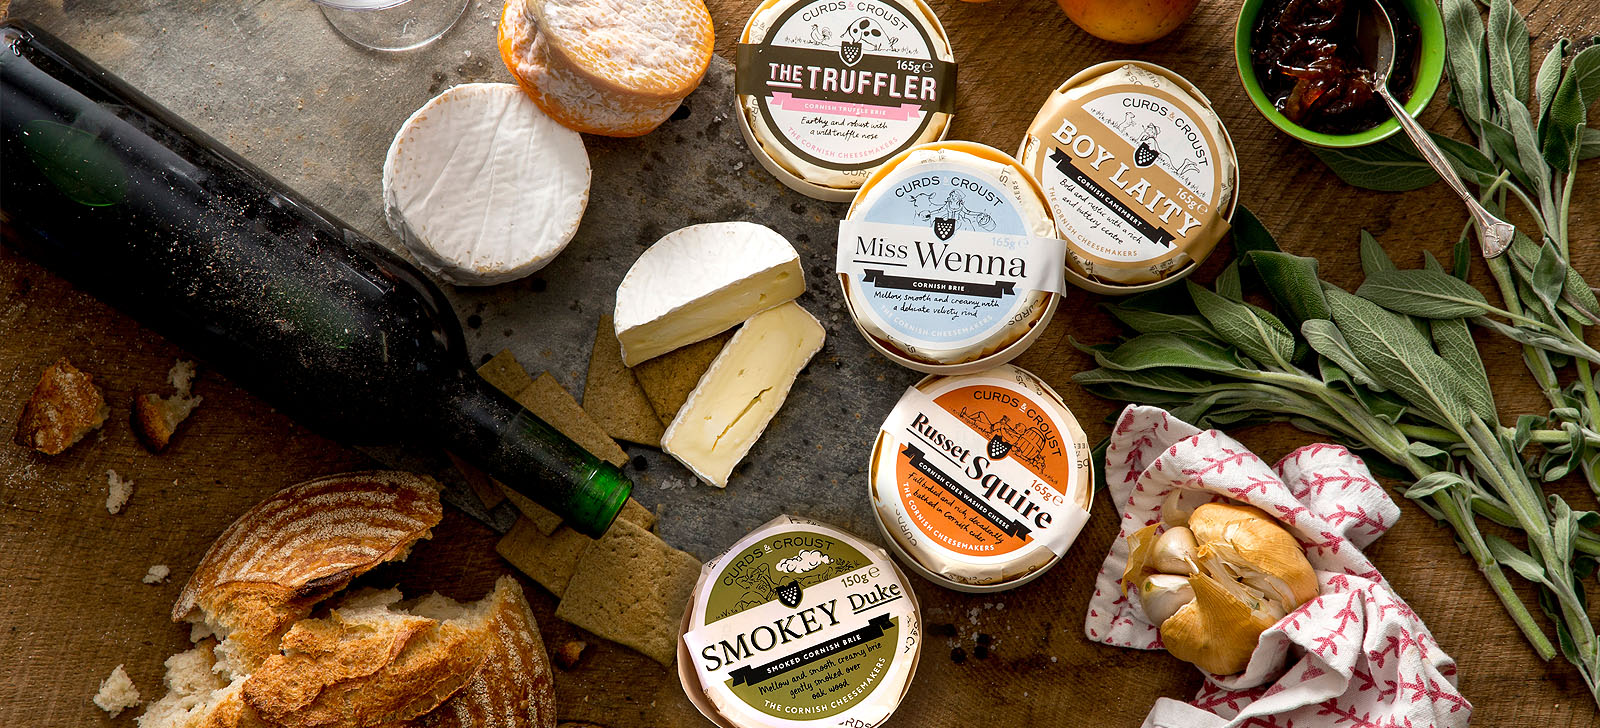 Curds & Croust artisan Cornish soft cheeses